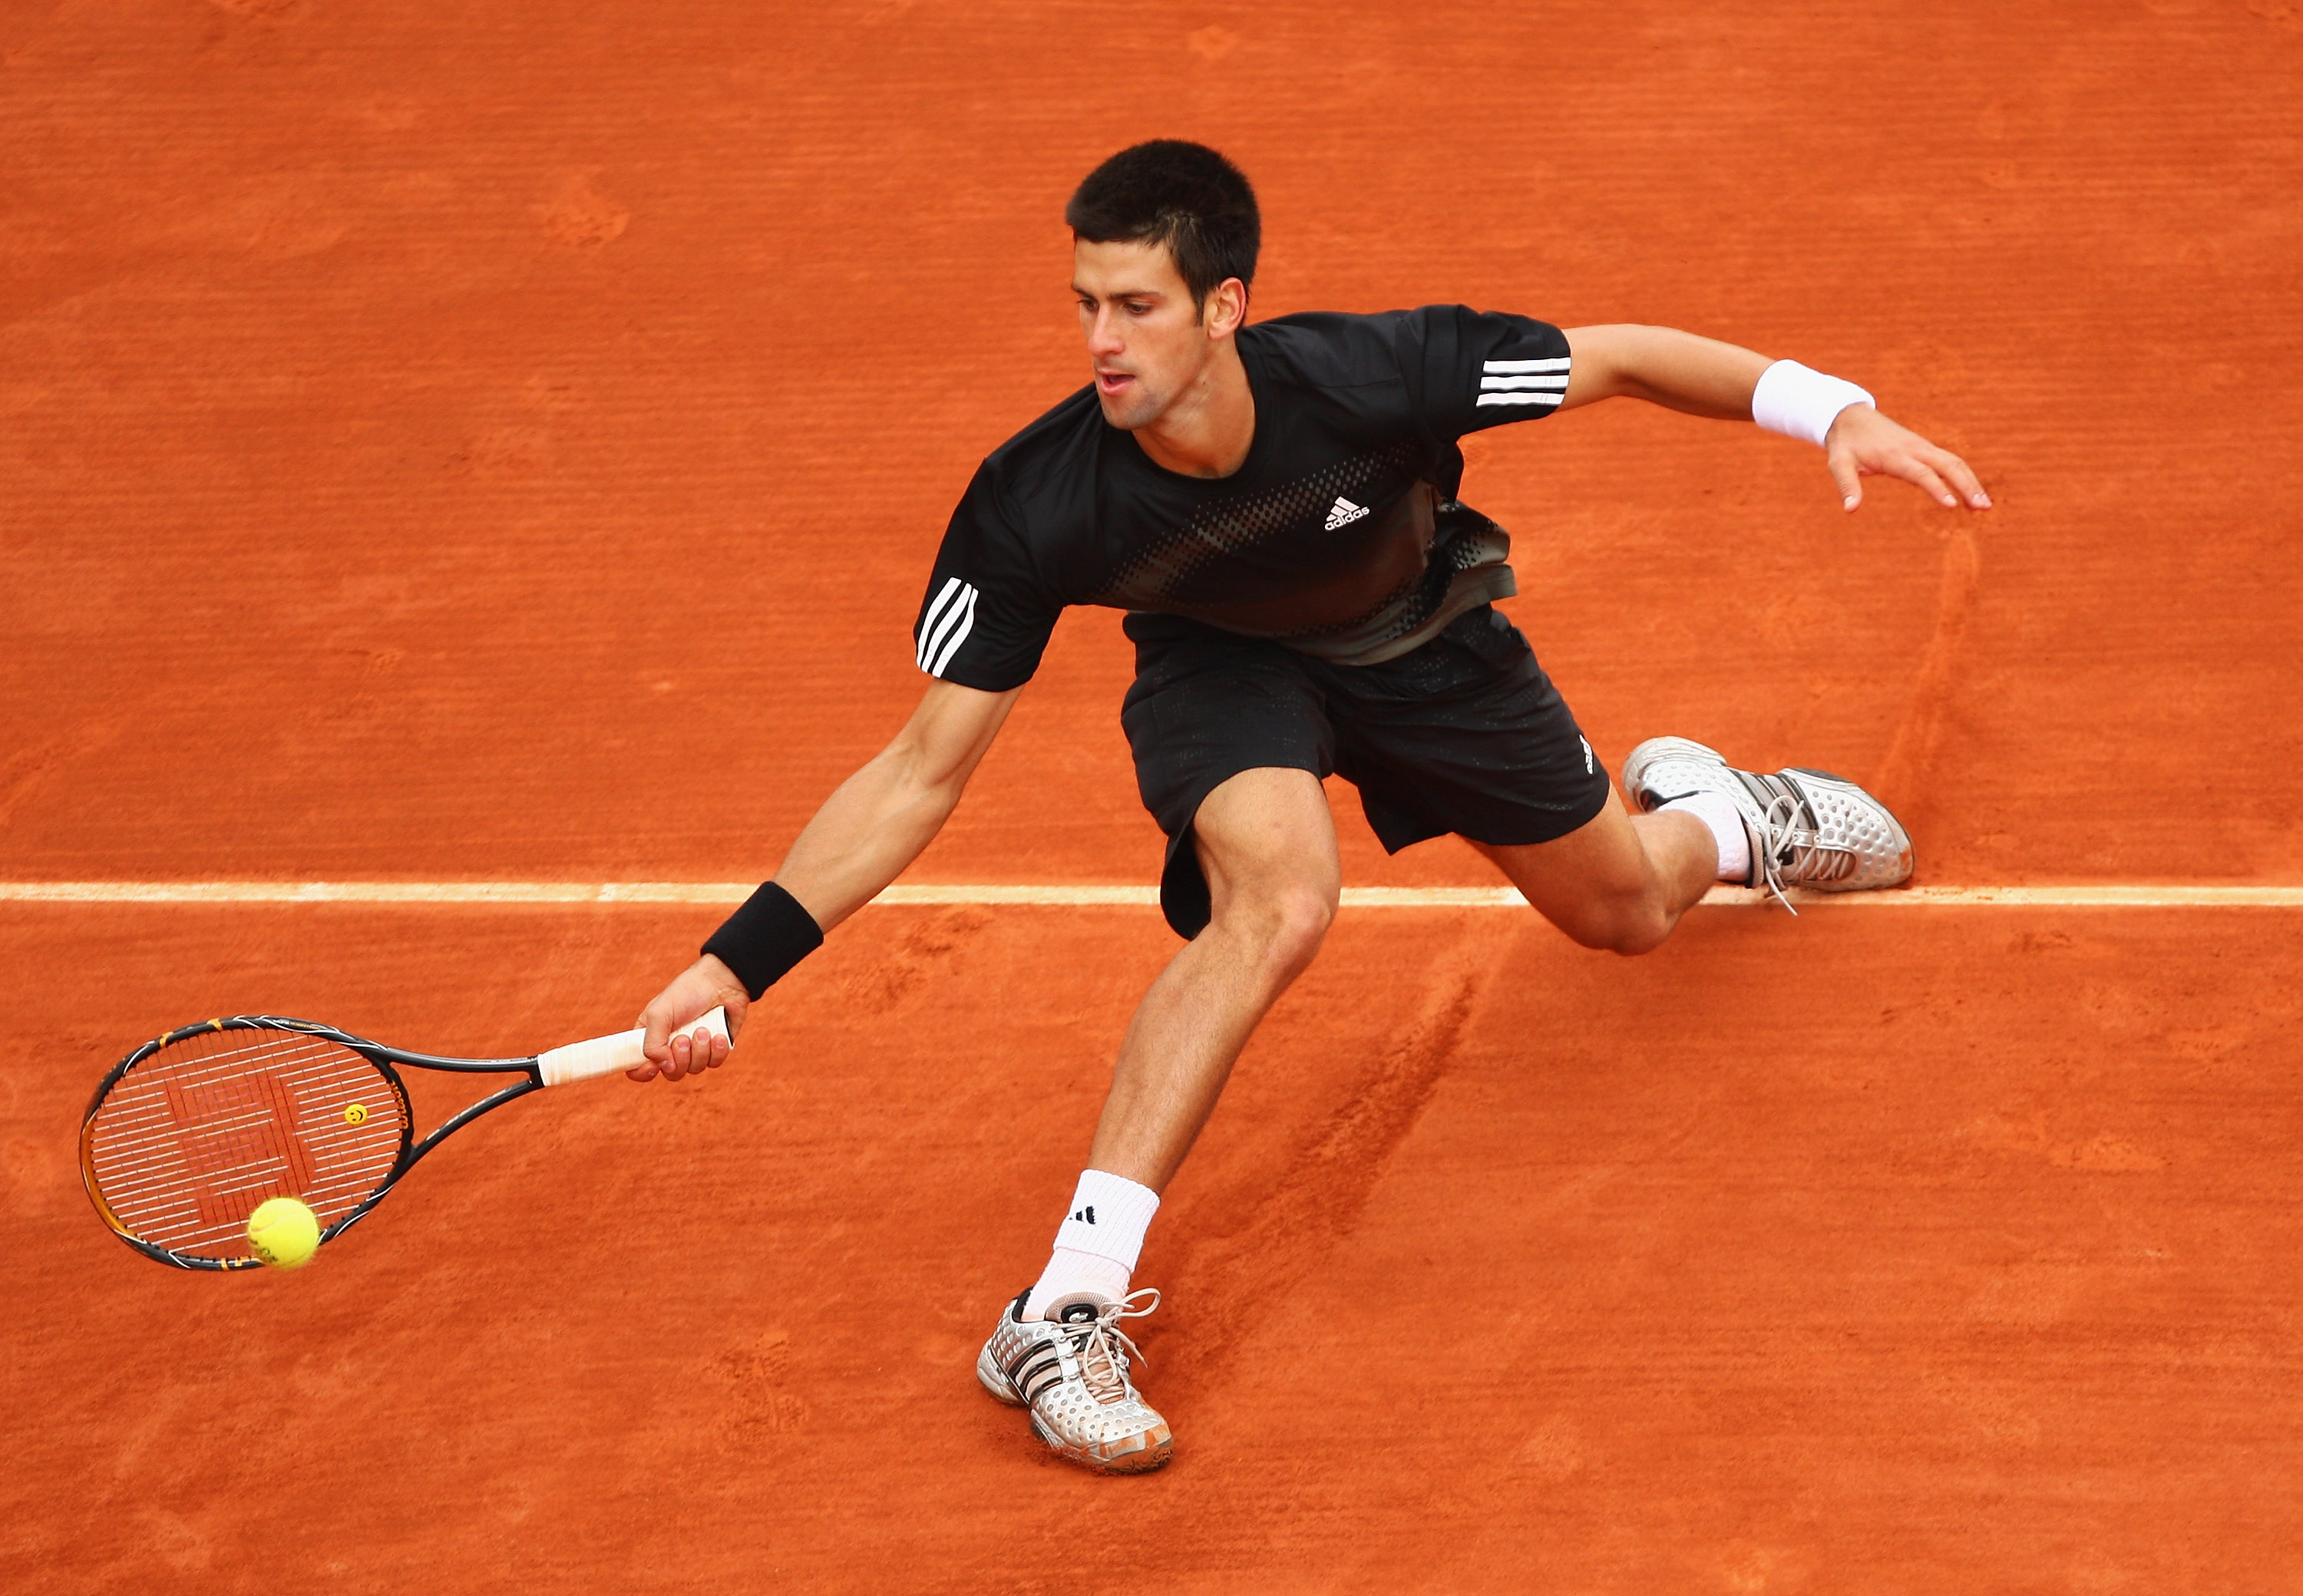 The monochrome continued through the French Open.